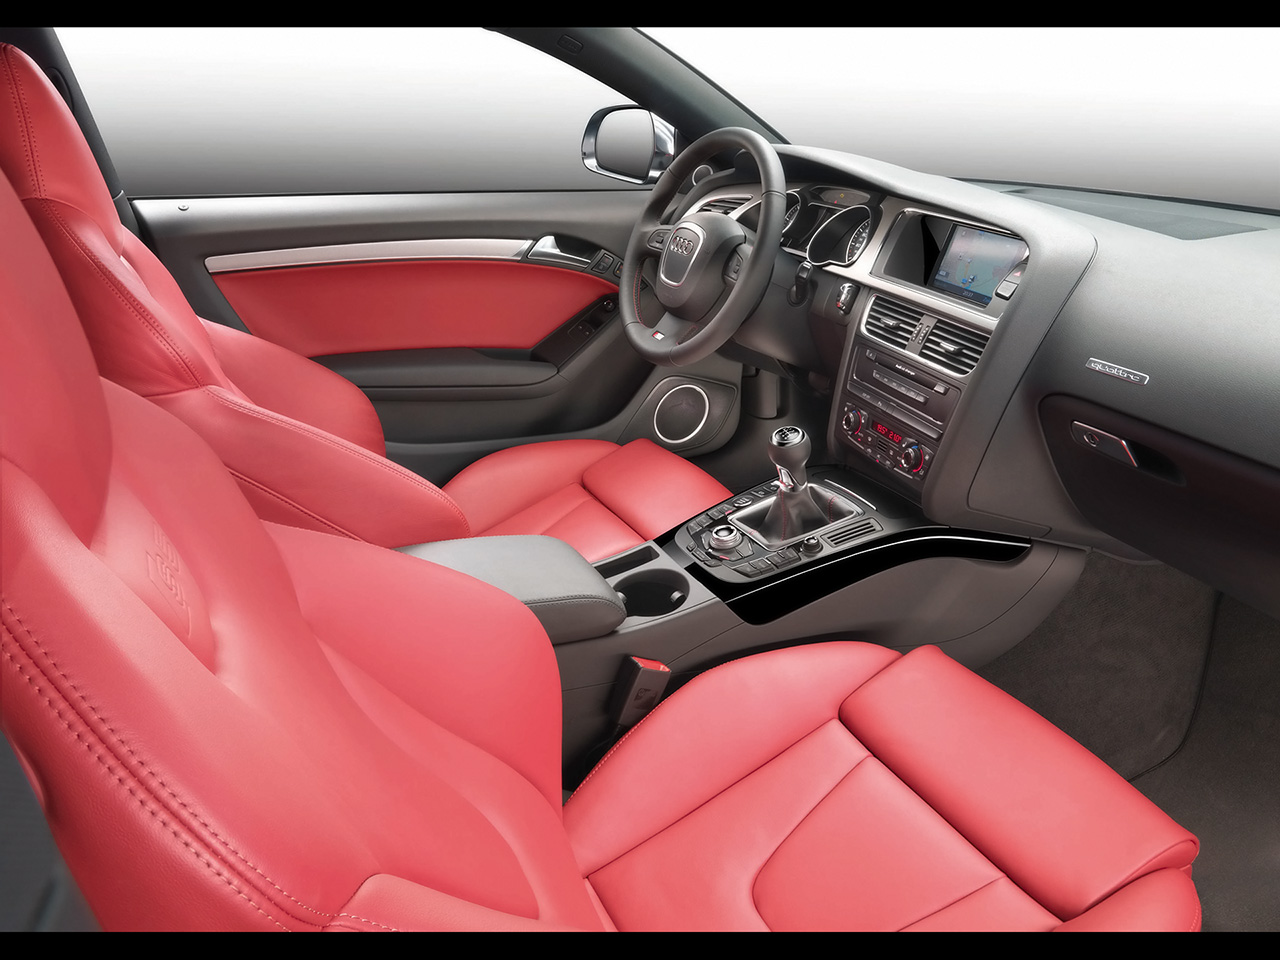 audi s5 interior cars wallpapers and pictures car images car pics carpicture. Black Bedroom Furniture Sets. Home Design Ideas